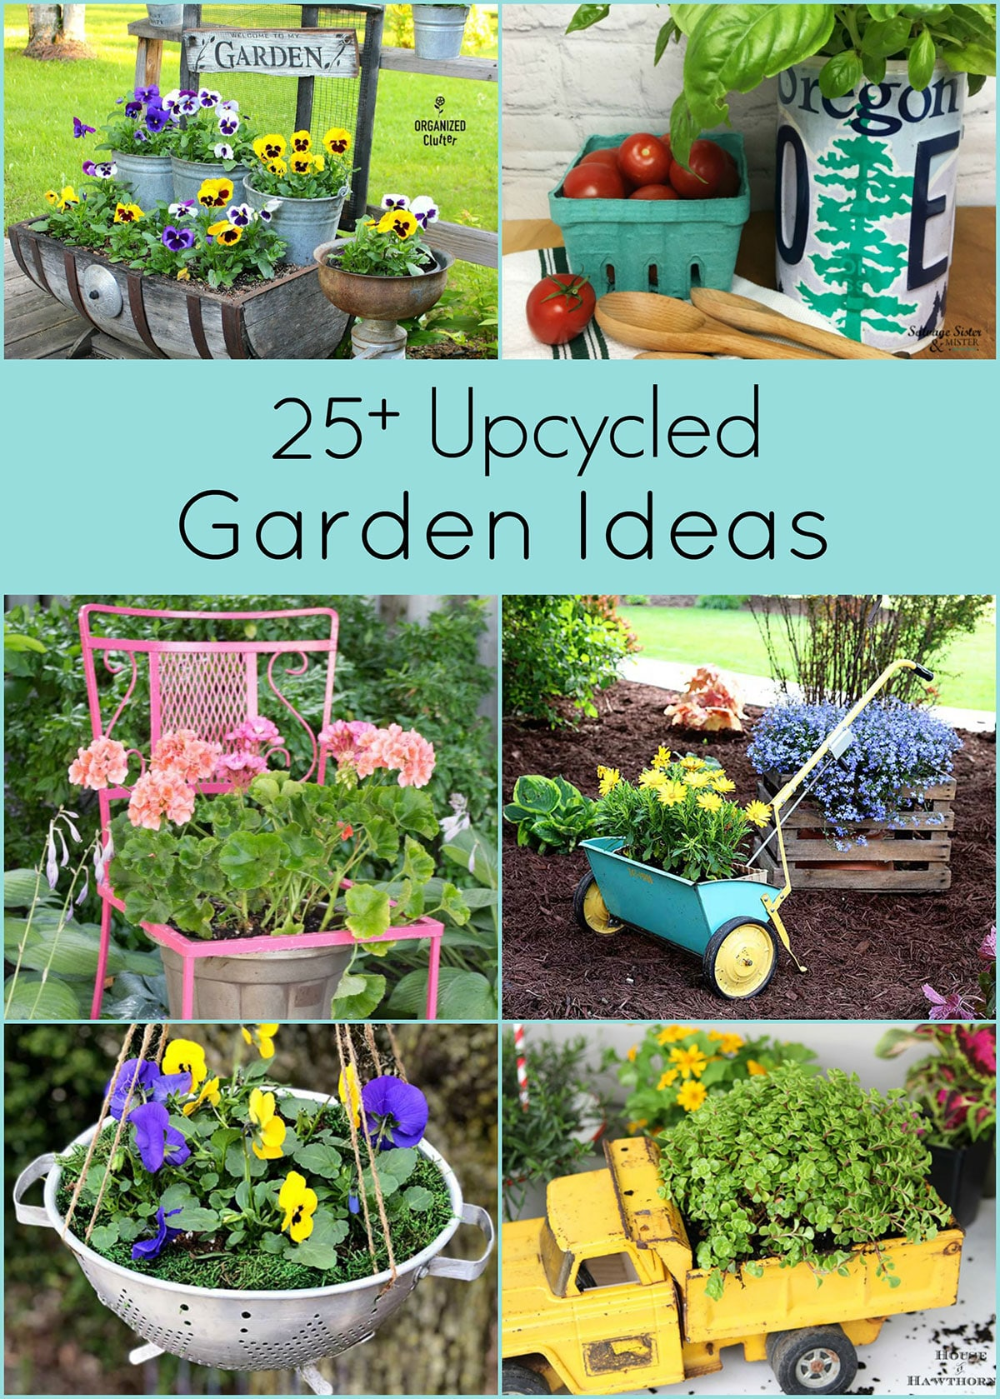 8+ Upcycled Garden Ideas - House of Hawthornes in 8  Upcycle